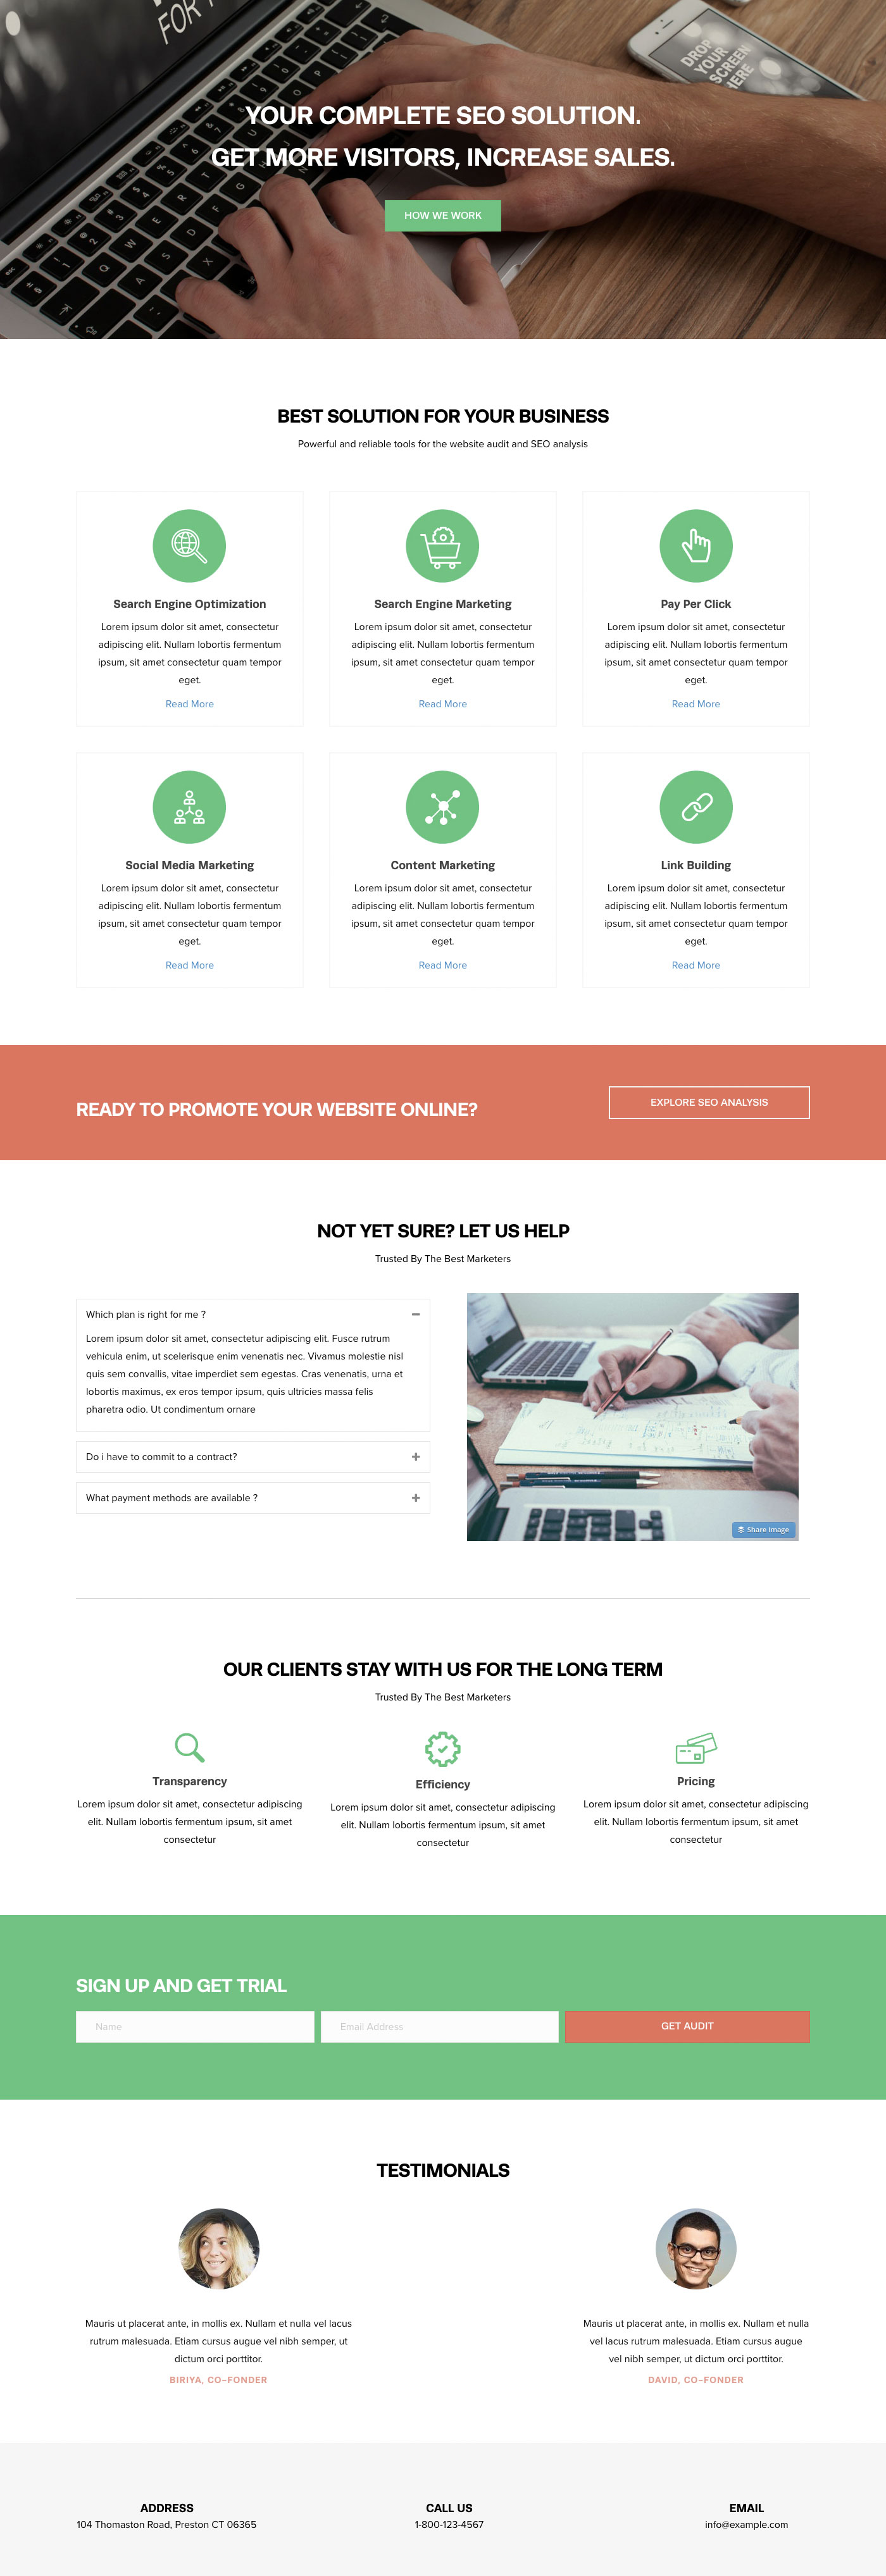 seo-agency-home-page-template